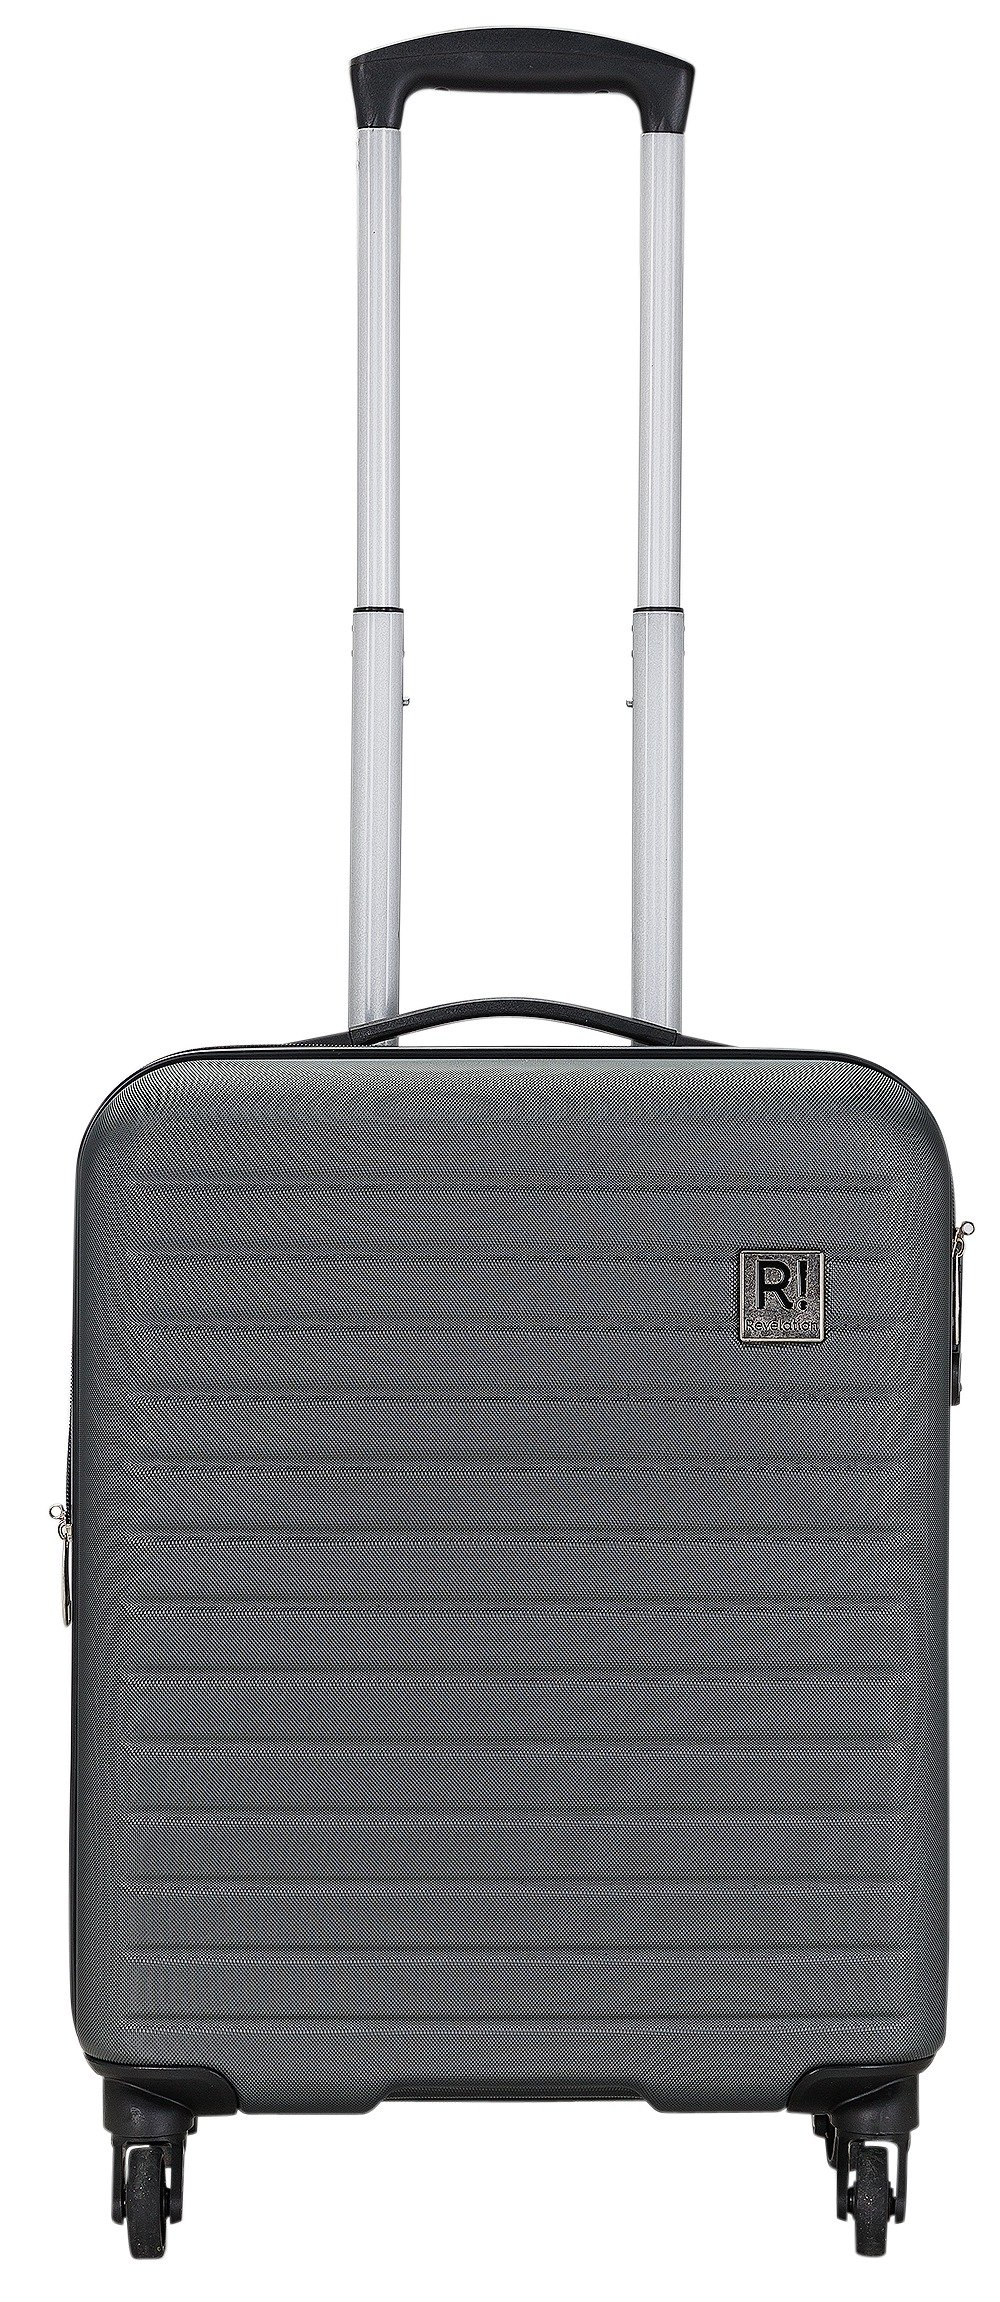 Small Hard Suitcases Wheels - Mc Luggage